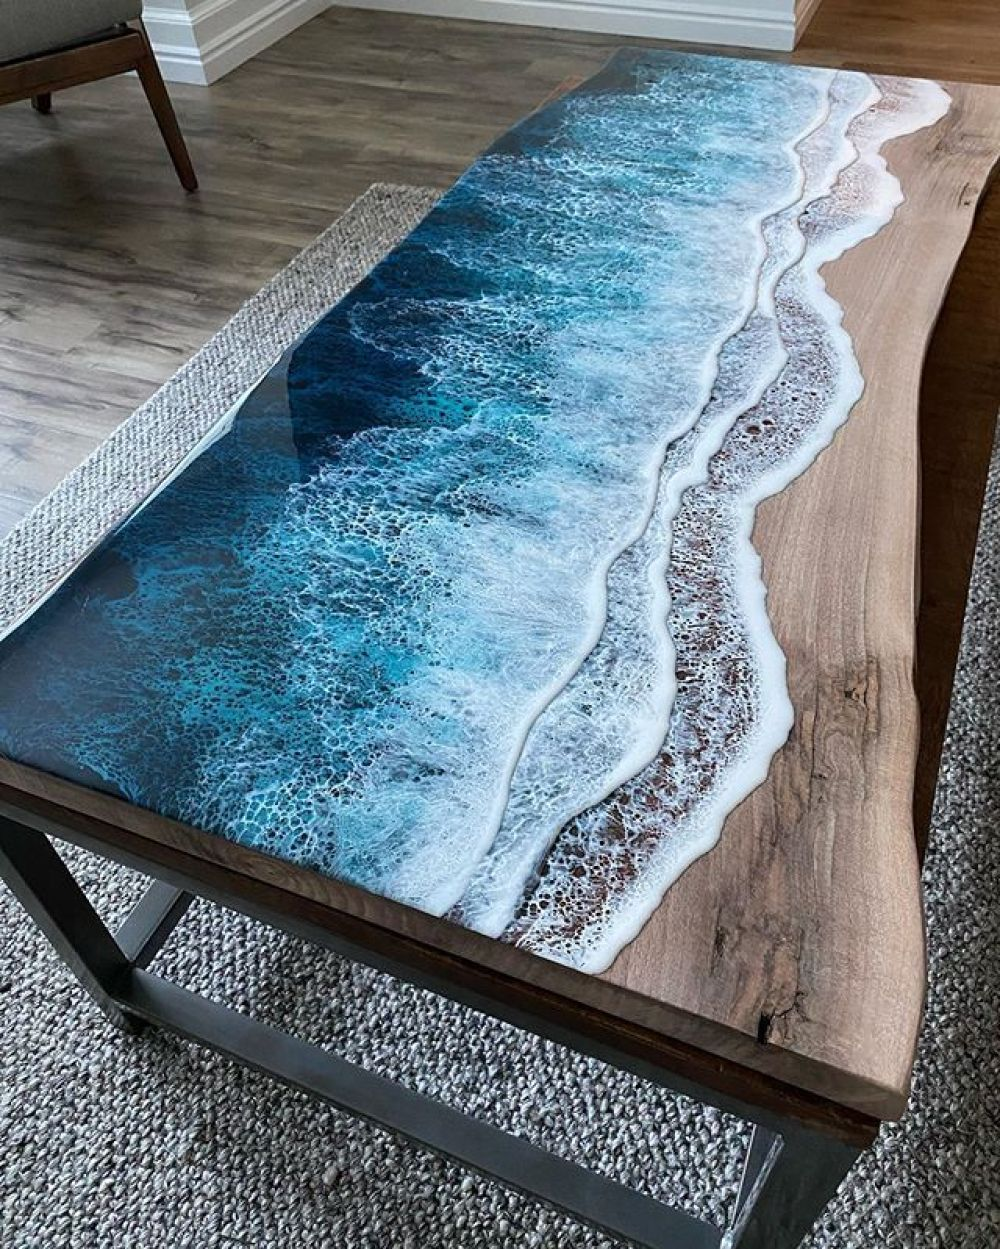 live-edge-ocean-surface-tables-by-rivka-wilkins-and-jared-davis-3